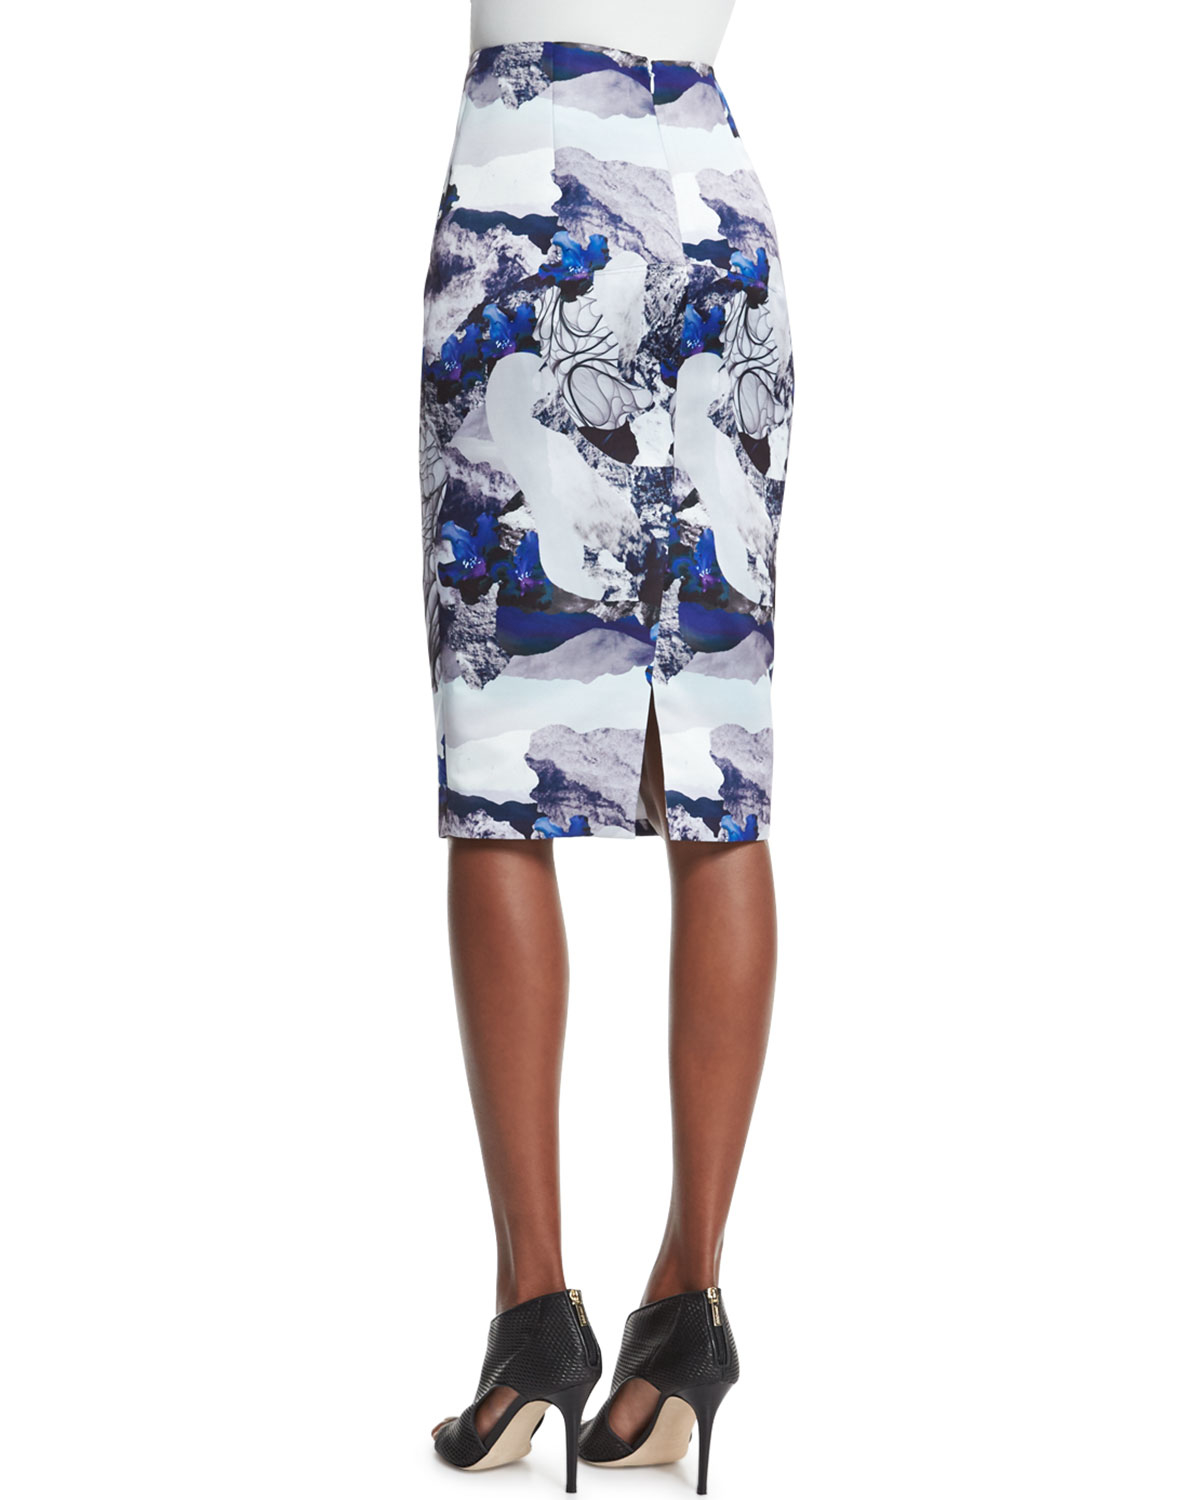 prabal gurung abstract floral print pencil skirt in blue